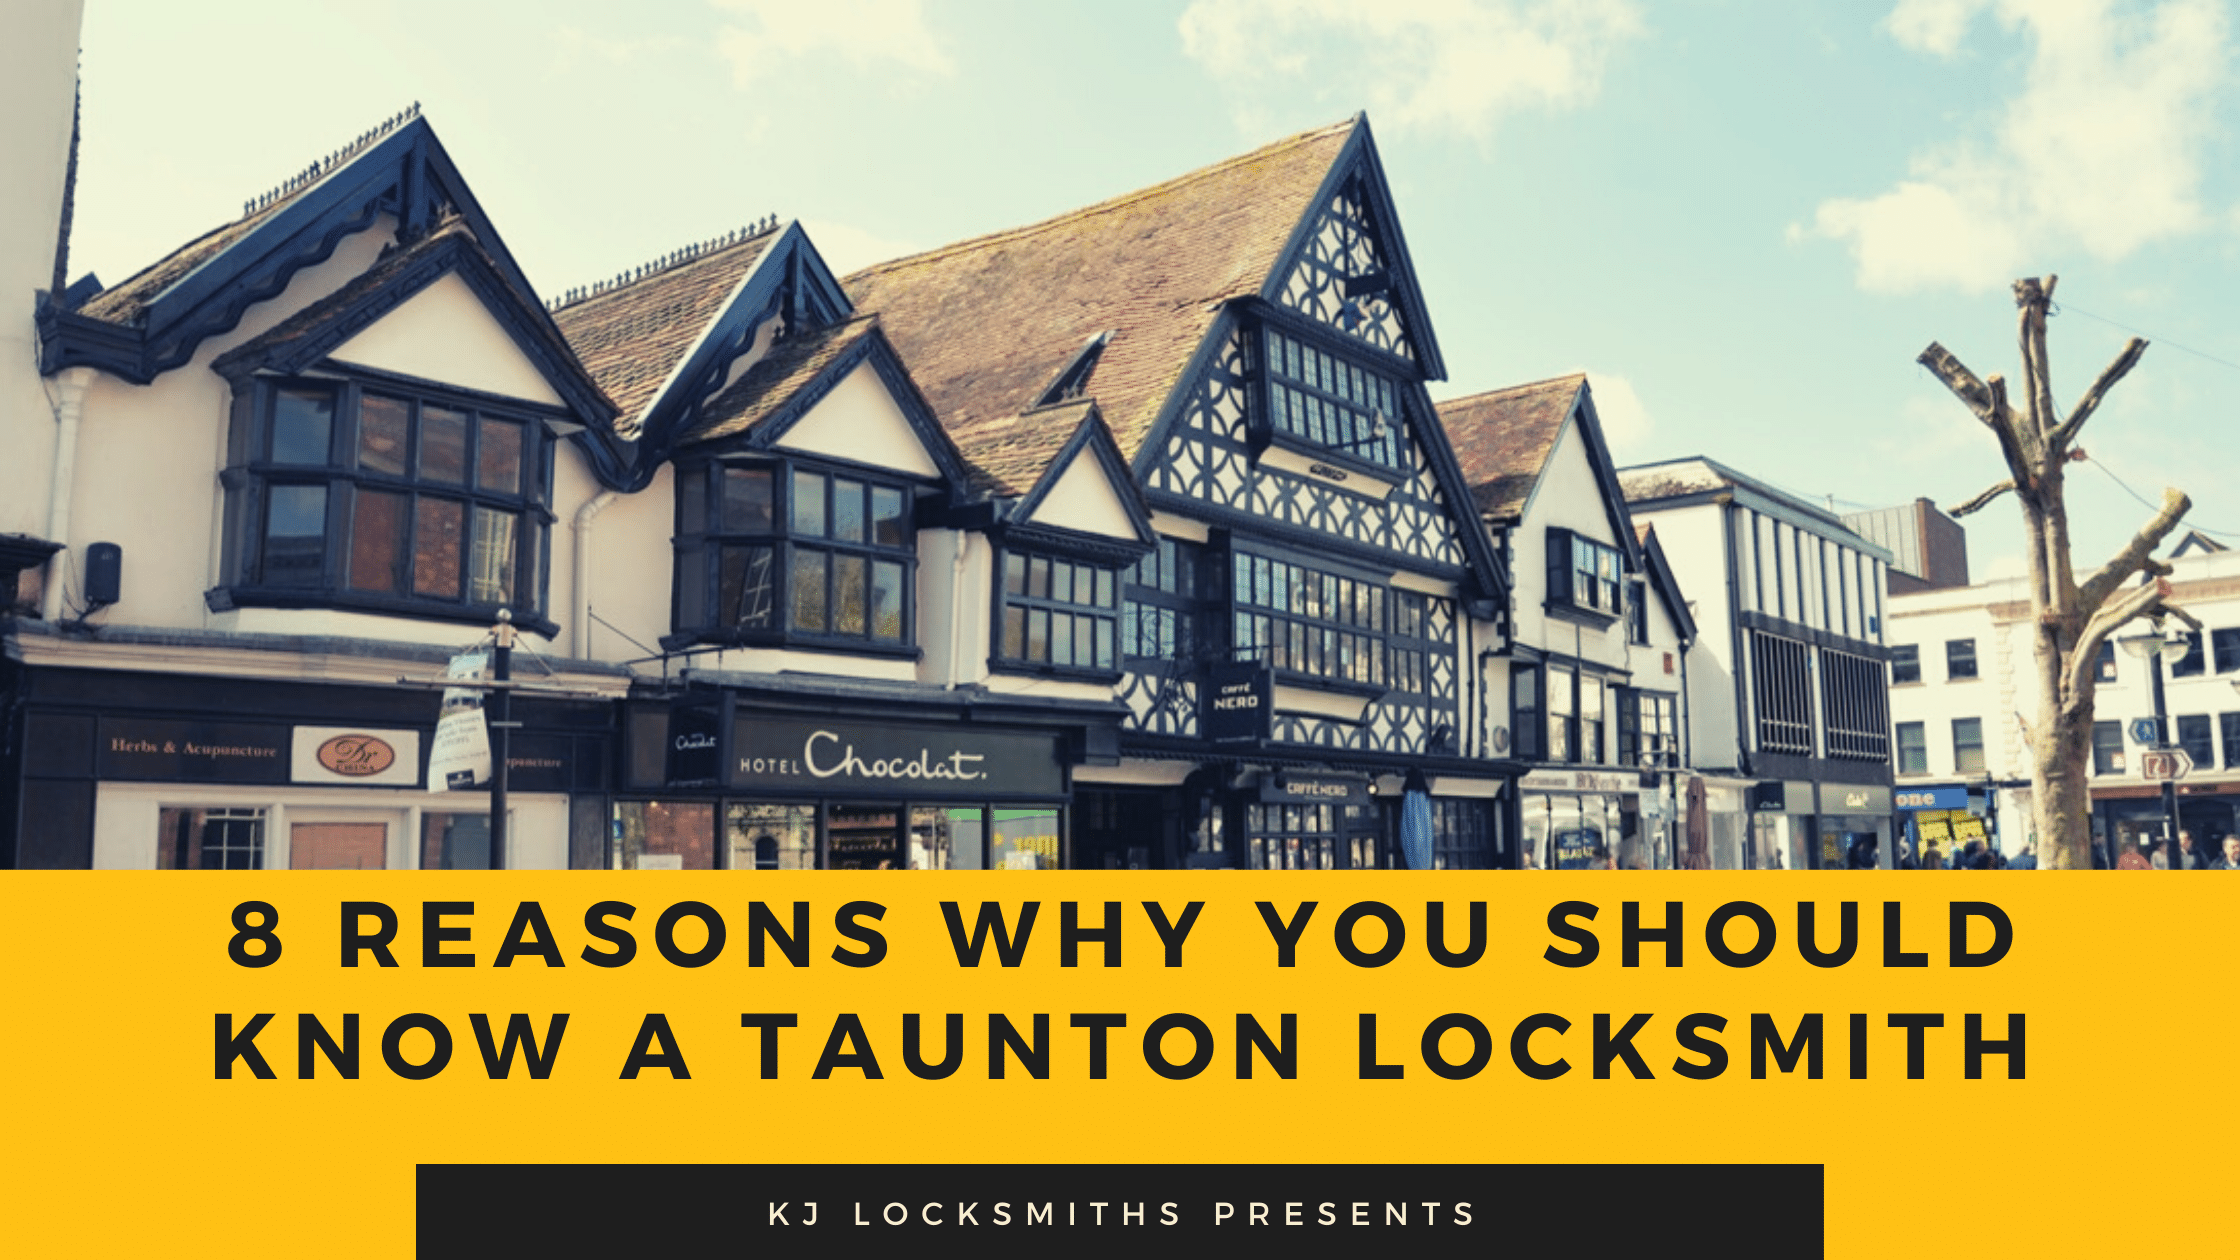 8 Reasons Why You Should Know A Taunton Locksmith